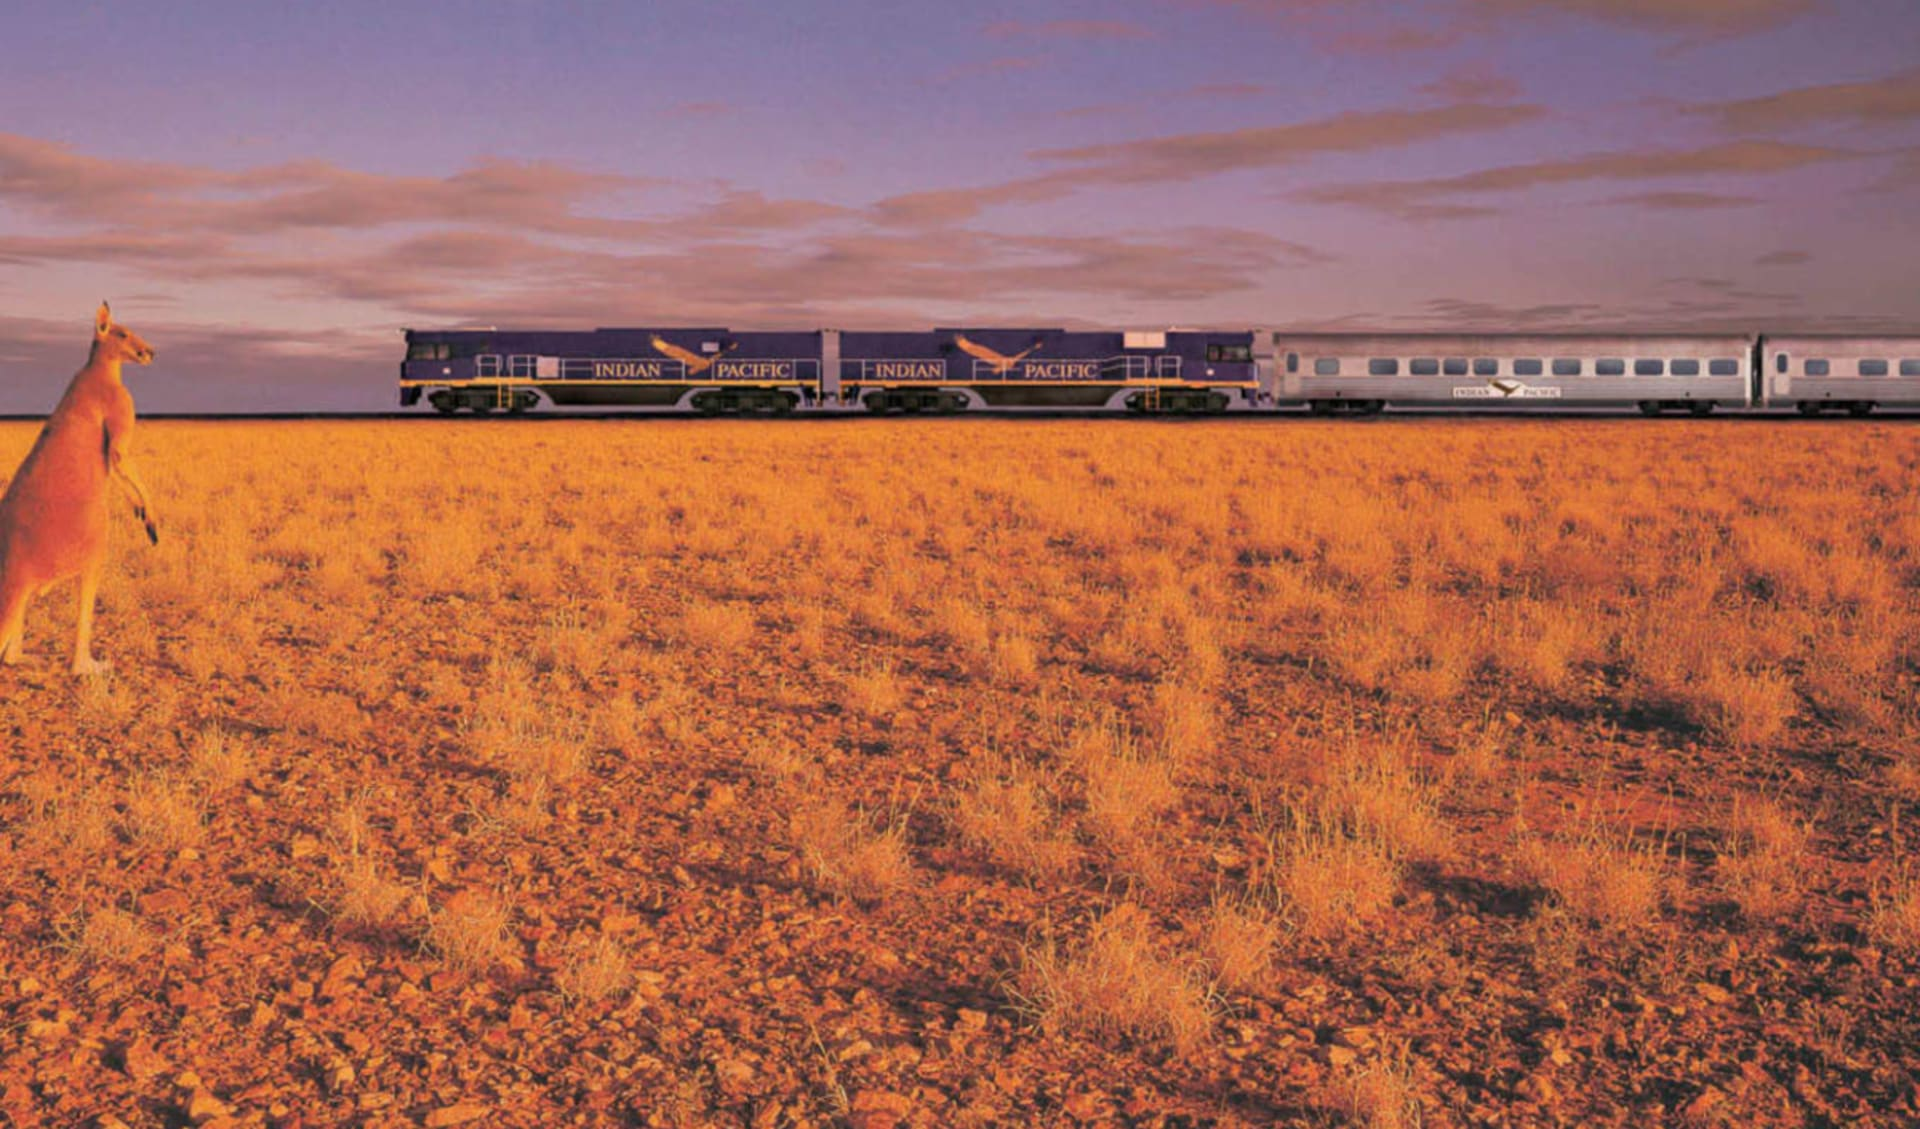 Indian Pacific von Perth nach Sydney: Australien - Bahnreisen - Indian Pacific mit Känguruh